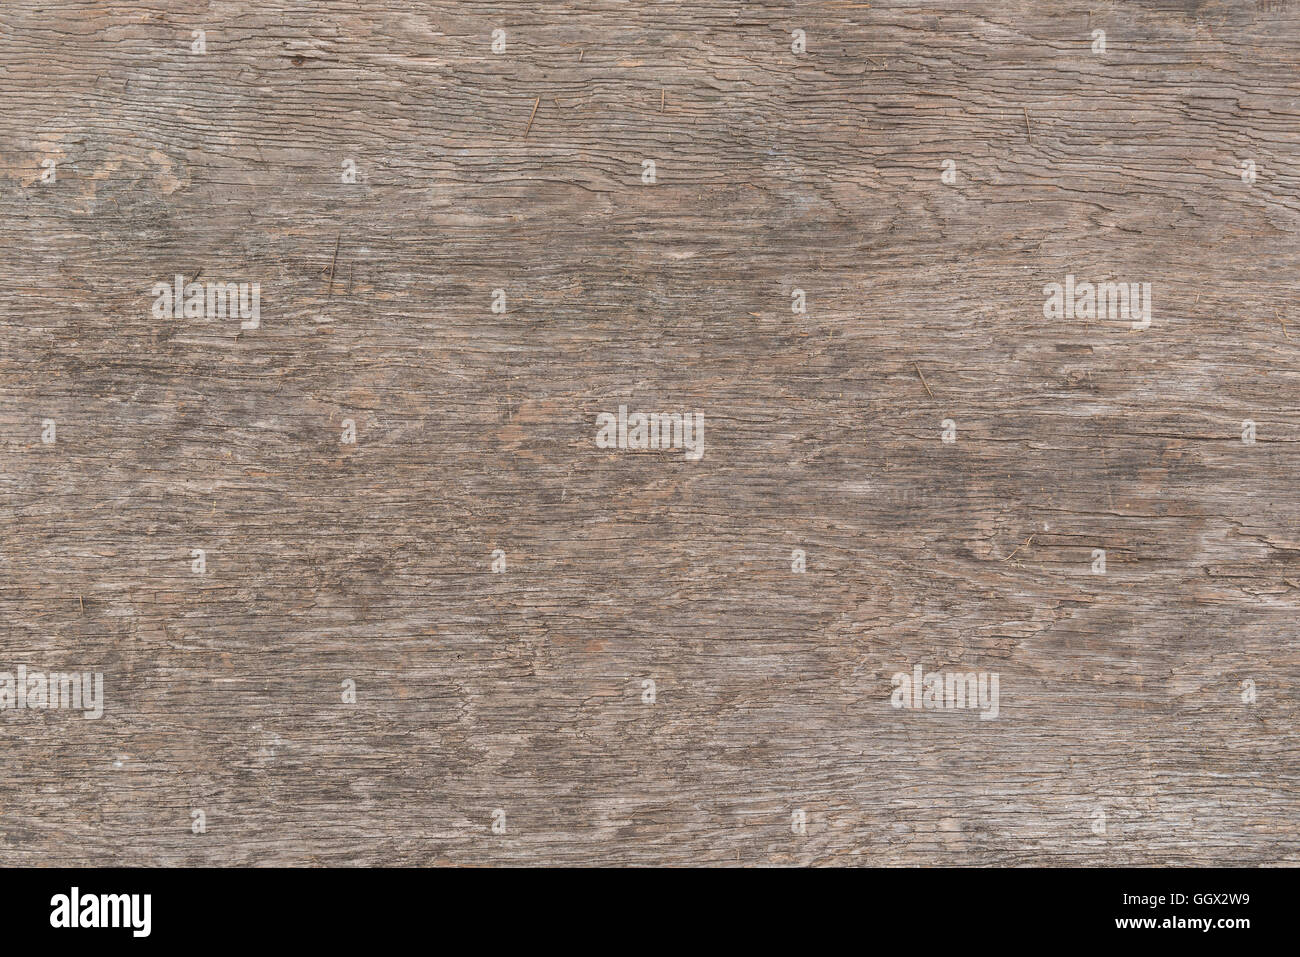 Weathered wooden plate as background picture - Stock Image